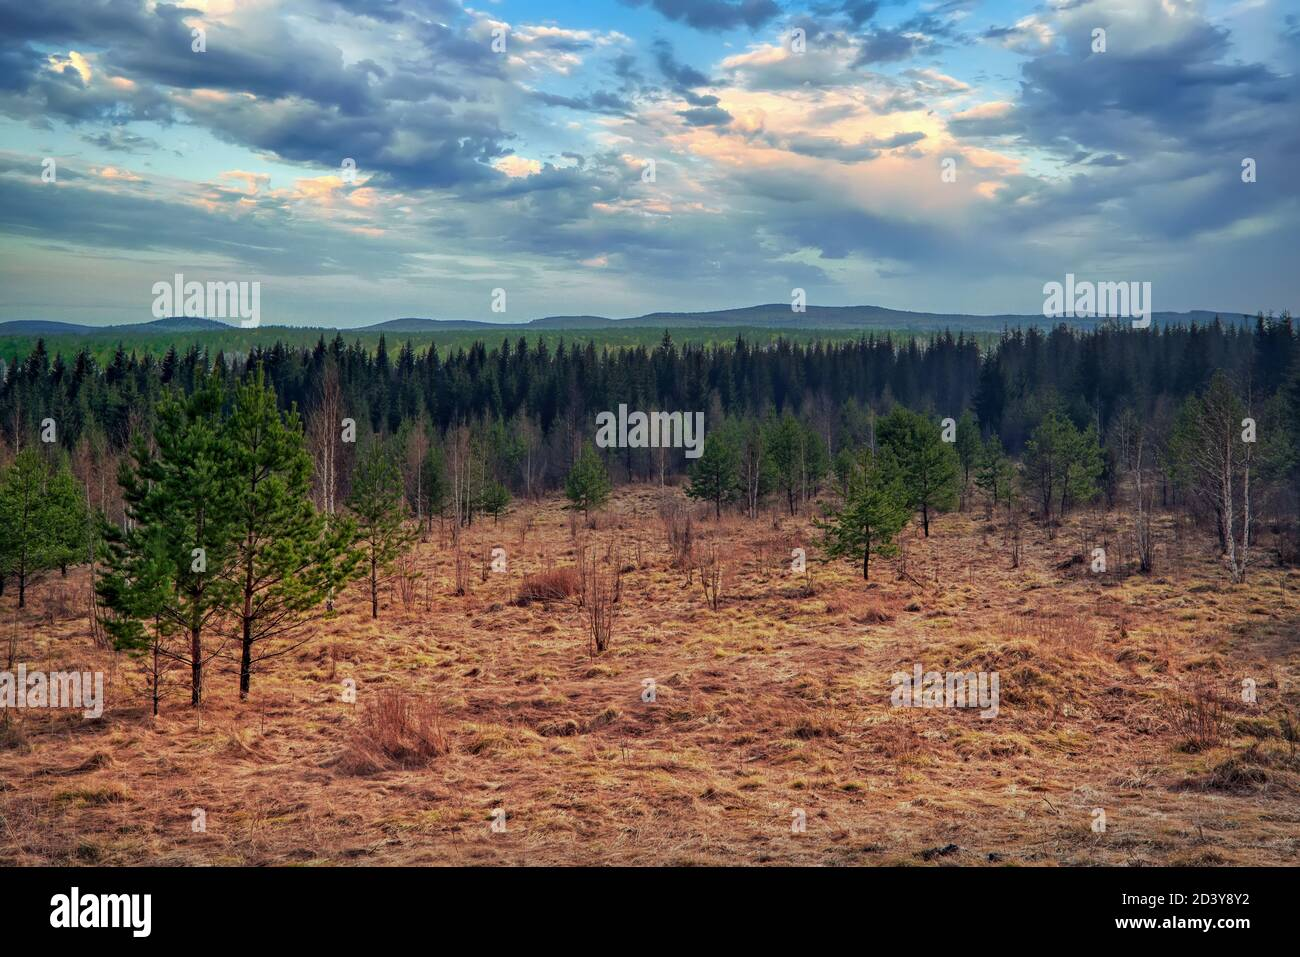 Early spring landscape in a young spruce forest. Green young fir in the forest against the background of blue sky and clouds. Stock Photo